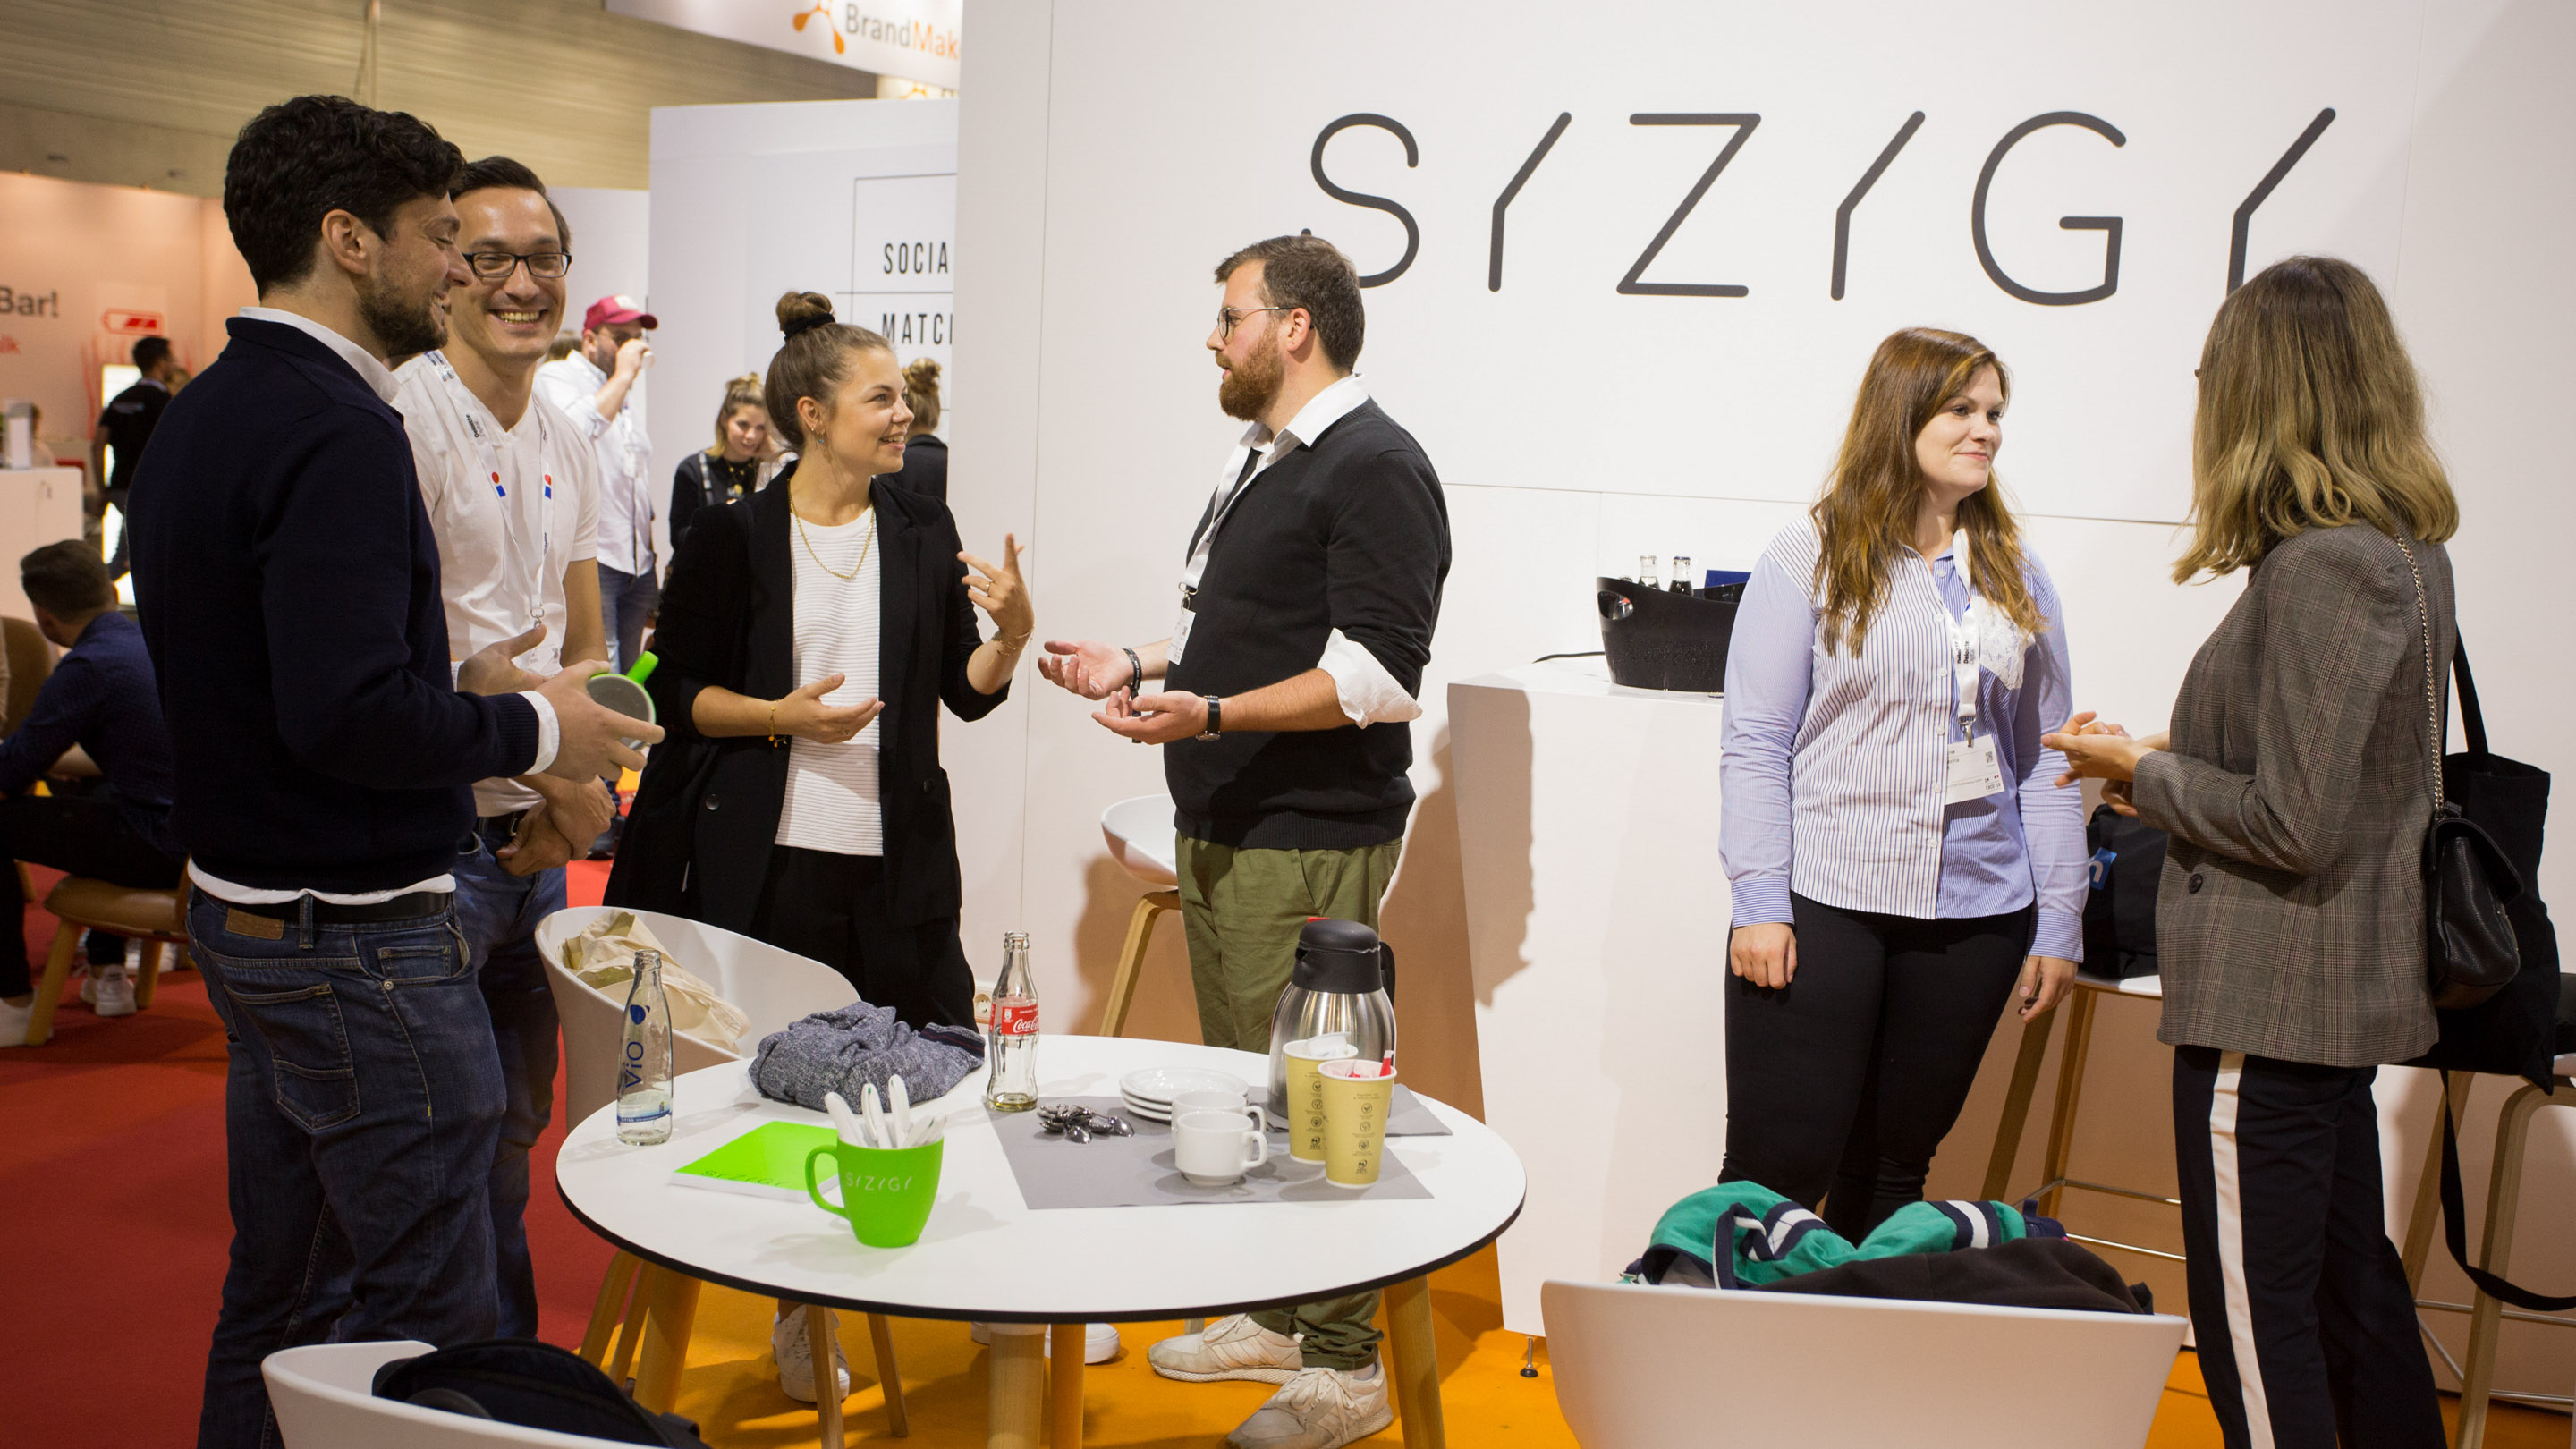 World of Agencies, Stand: Sizigi, Halle 6, DMEXCO 2019